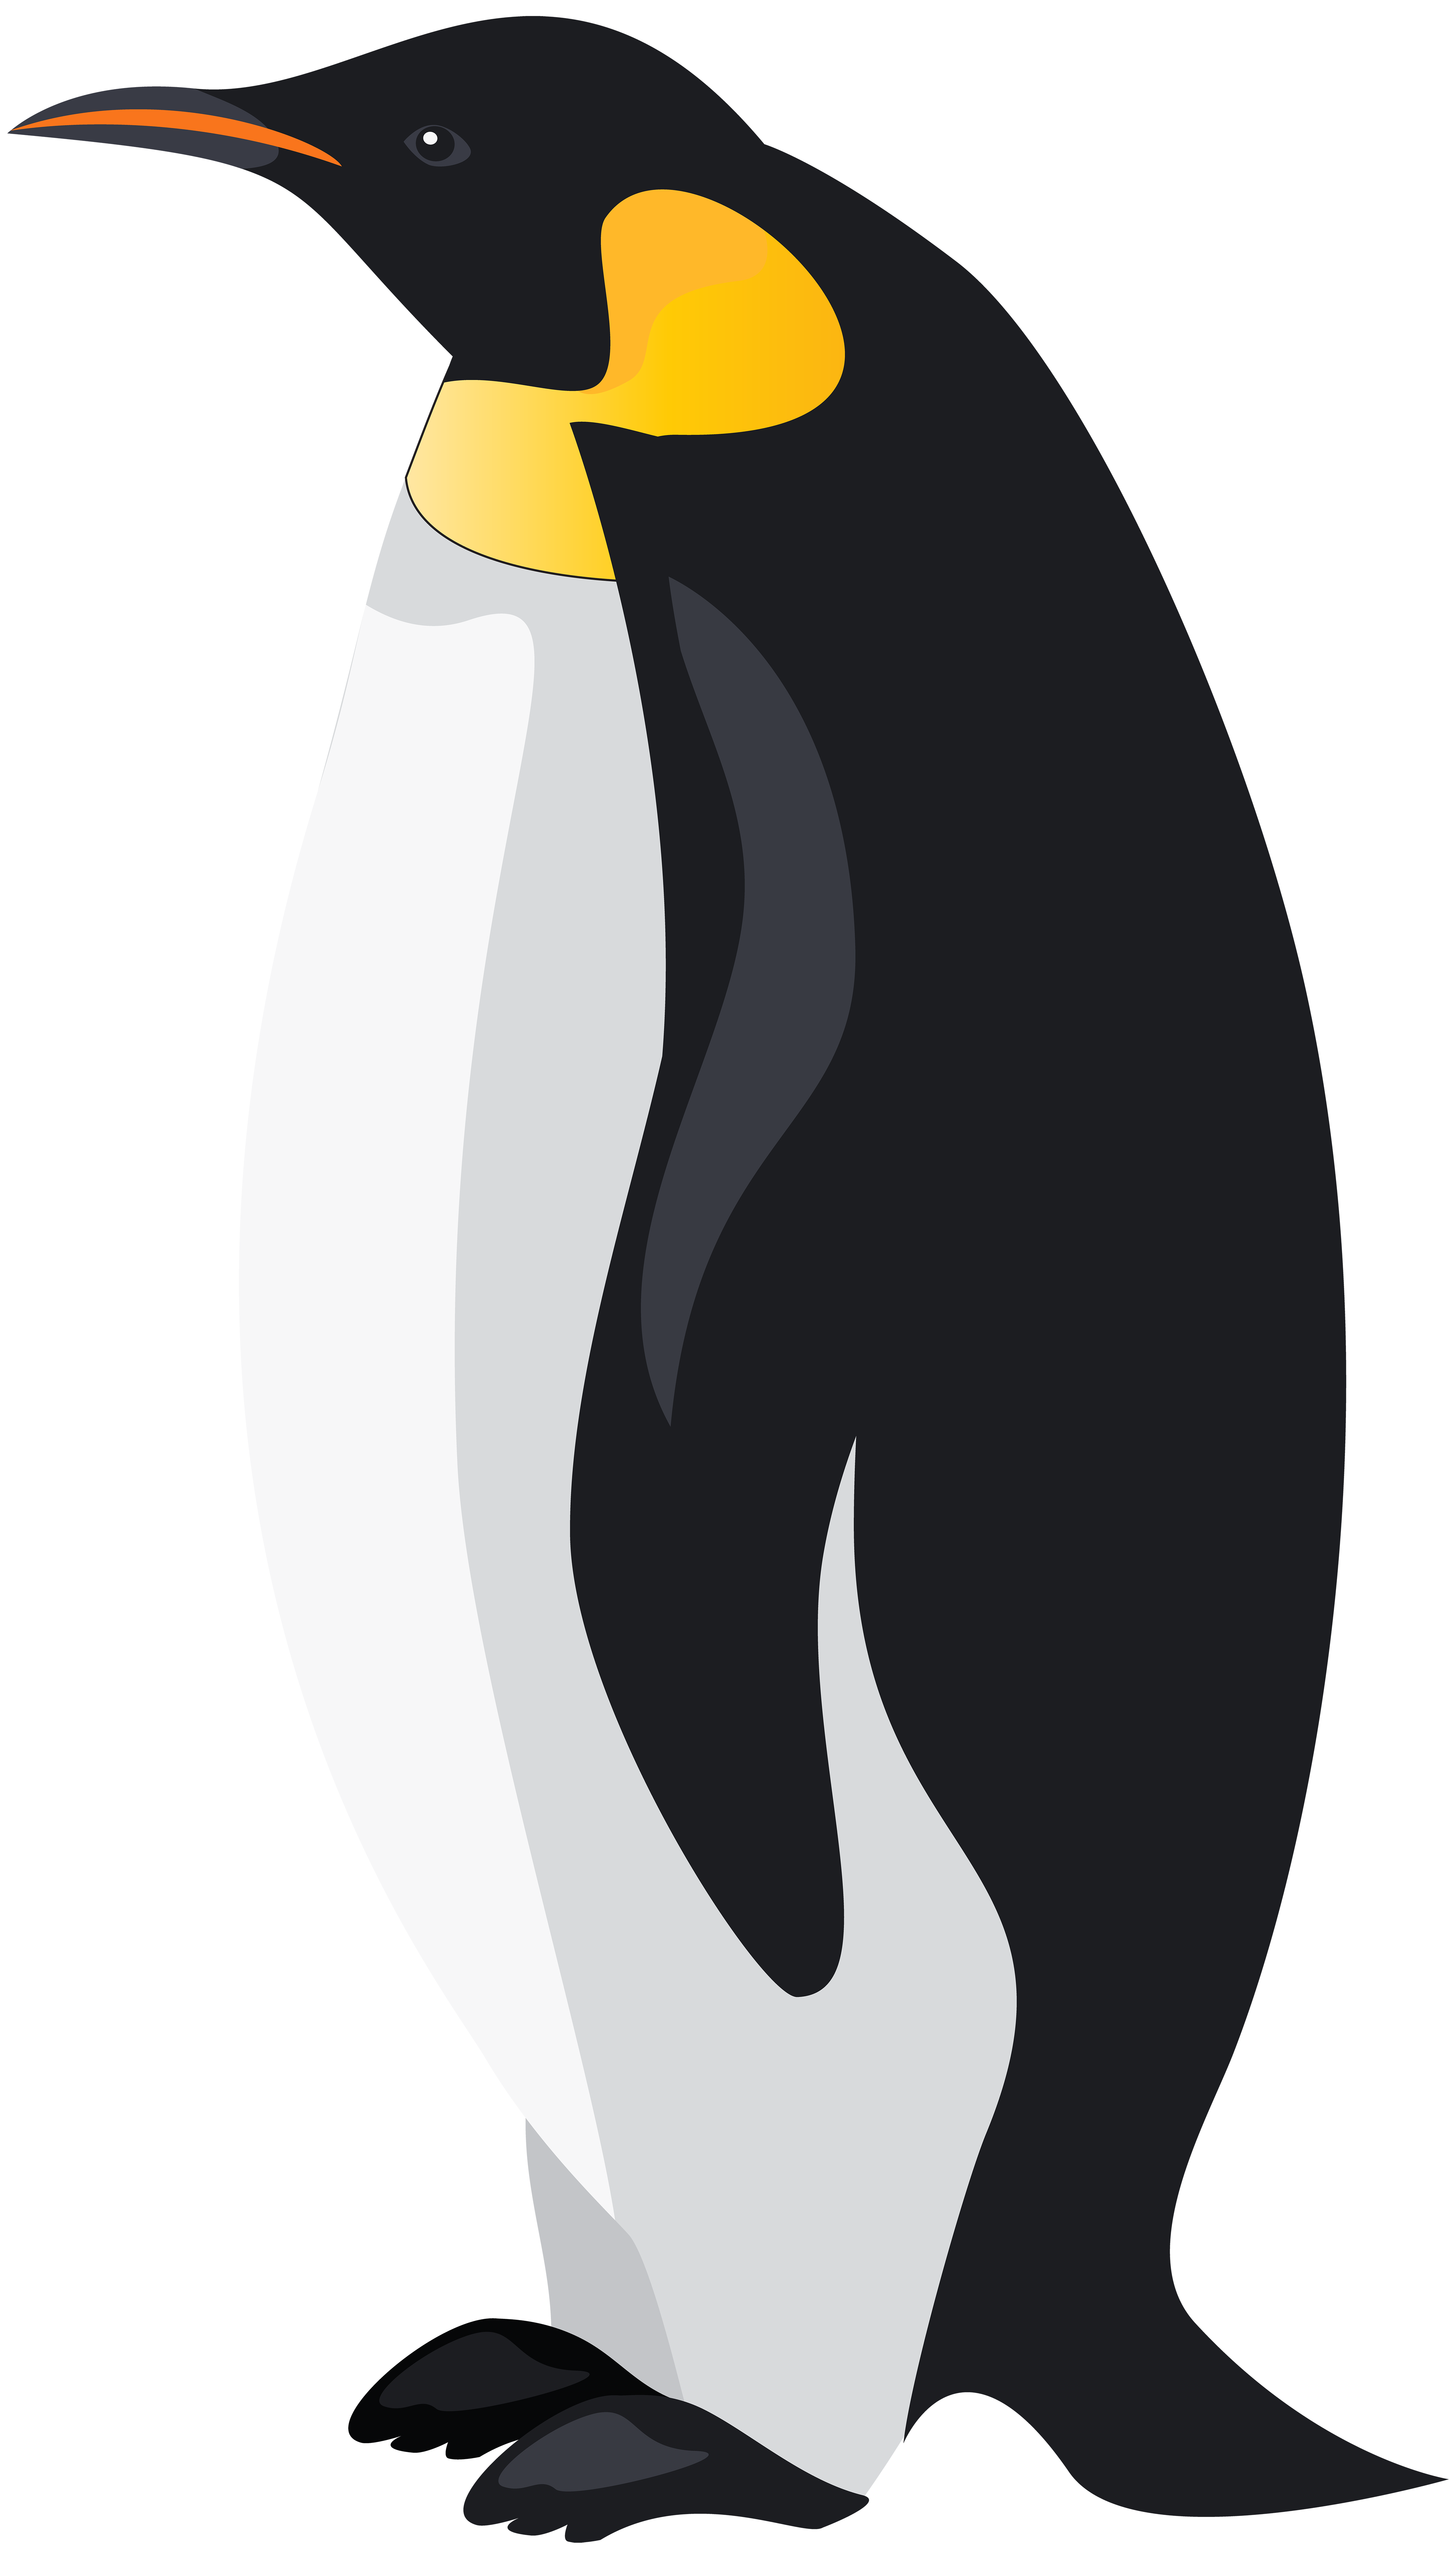 Art Penguin Png & Free Art Penguin.png Transparent Images.